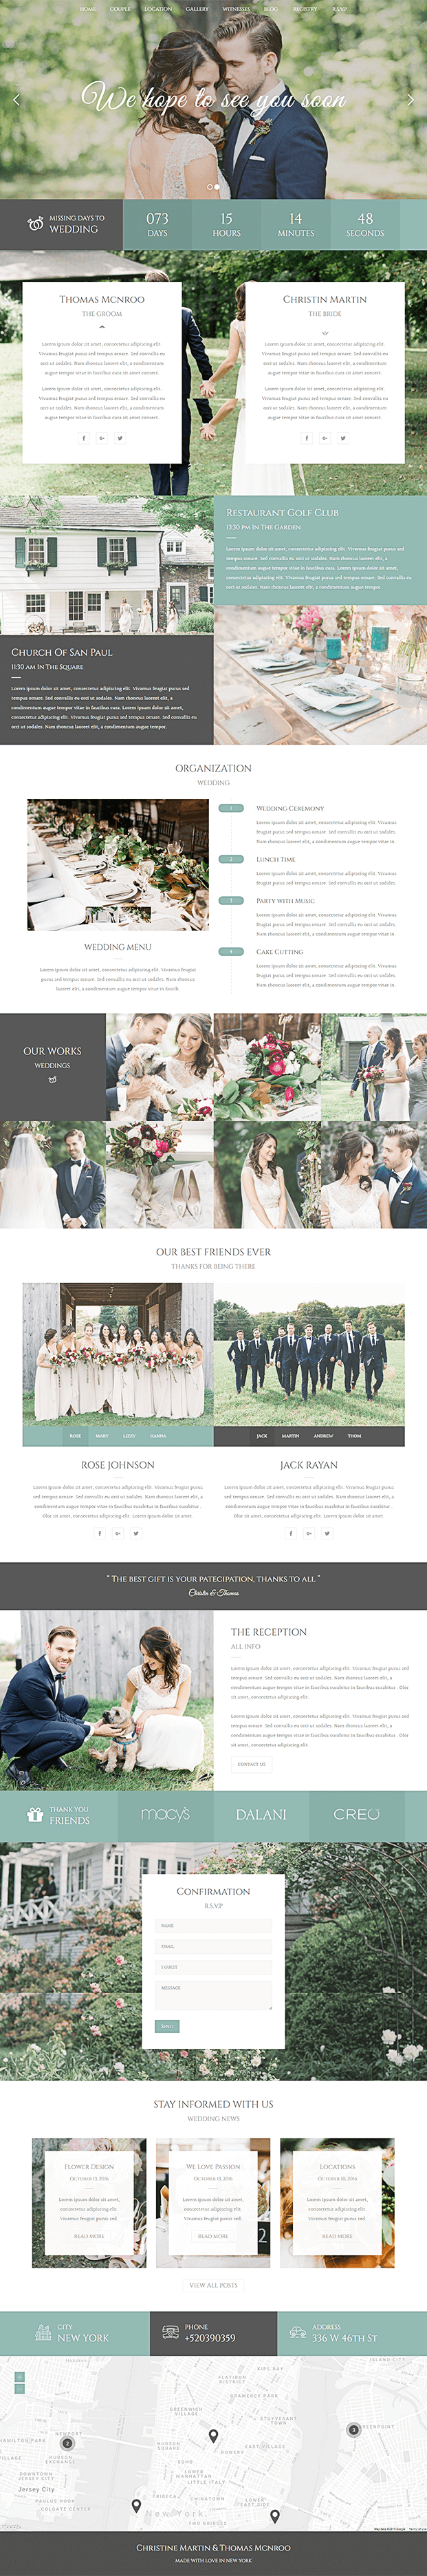 Home - WordPress Theme For Wedding Planner